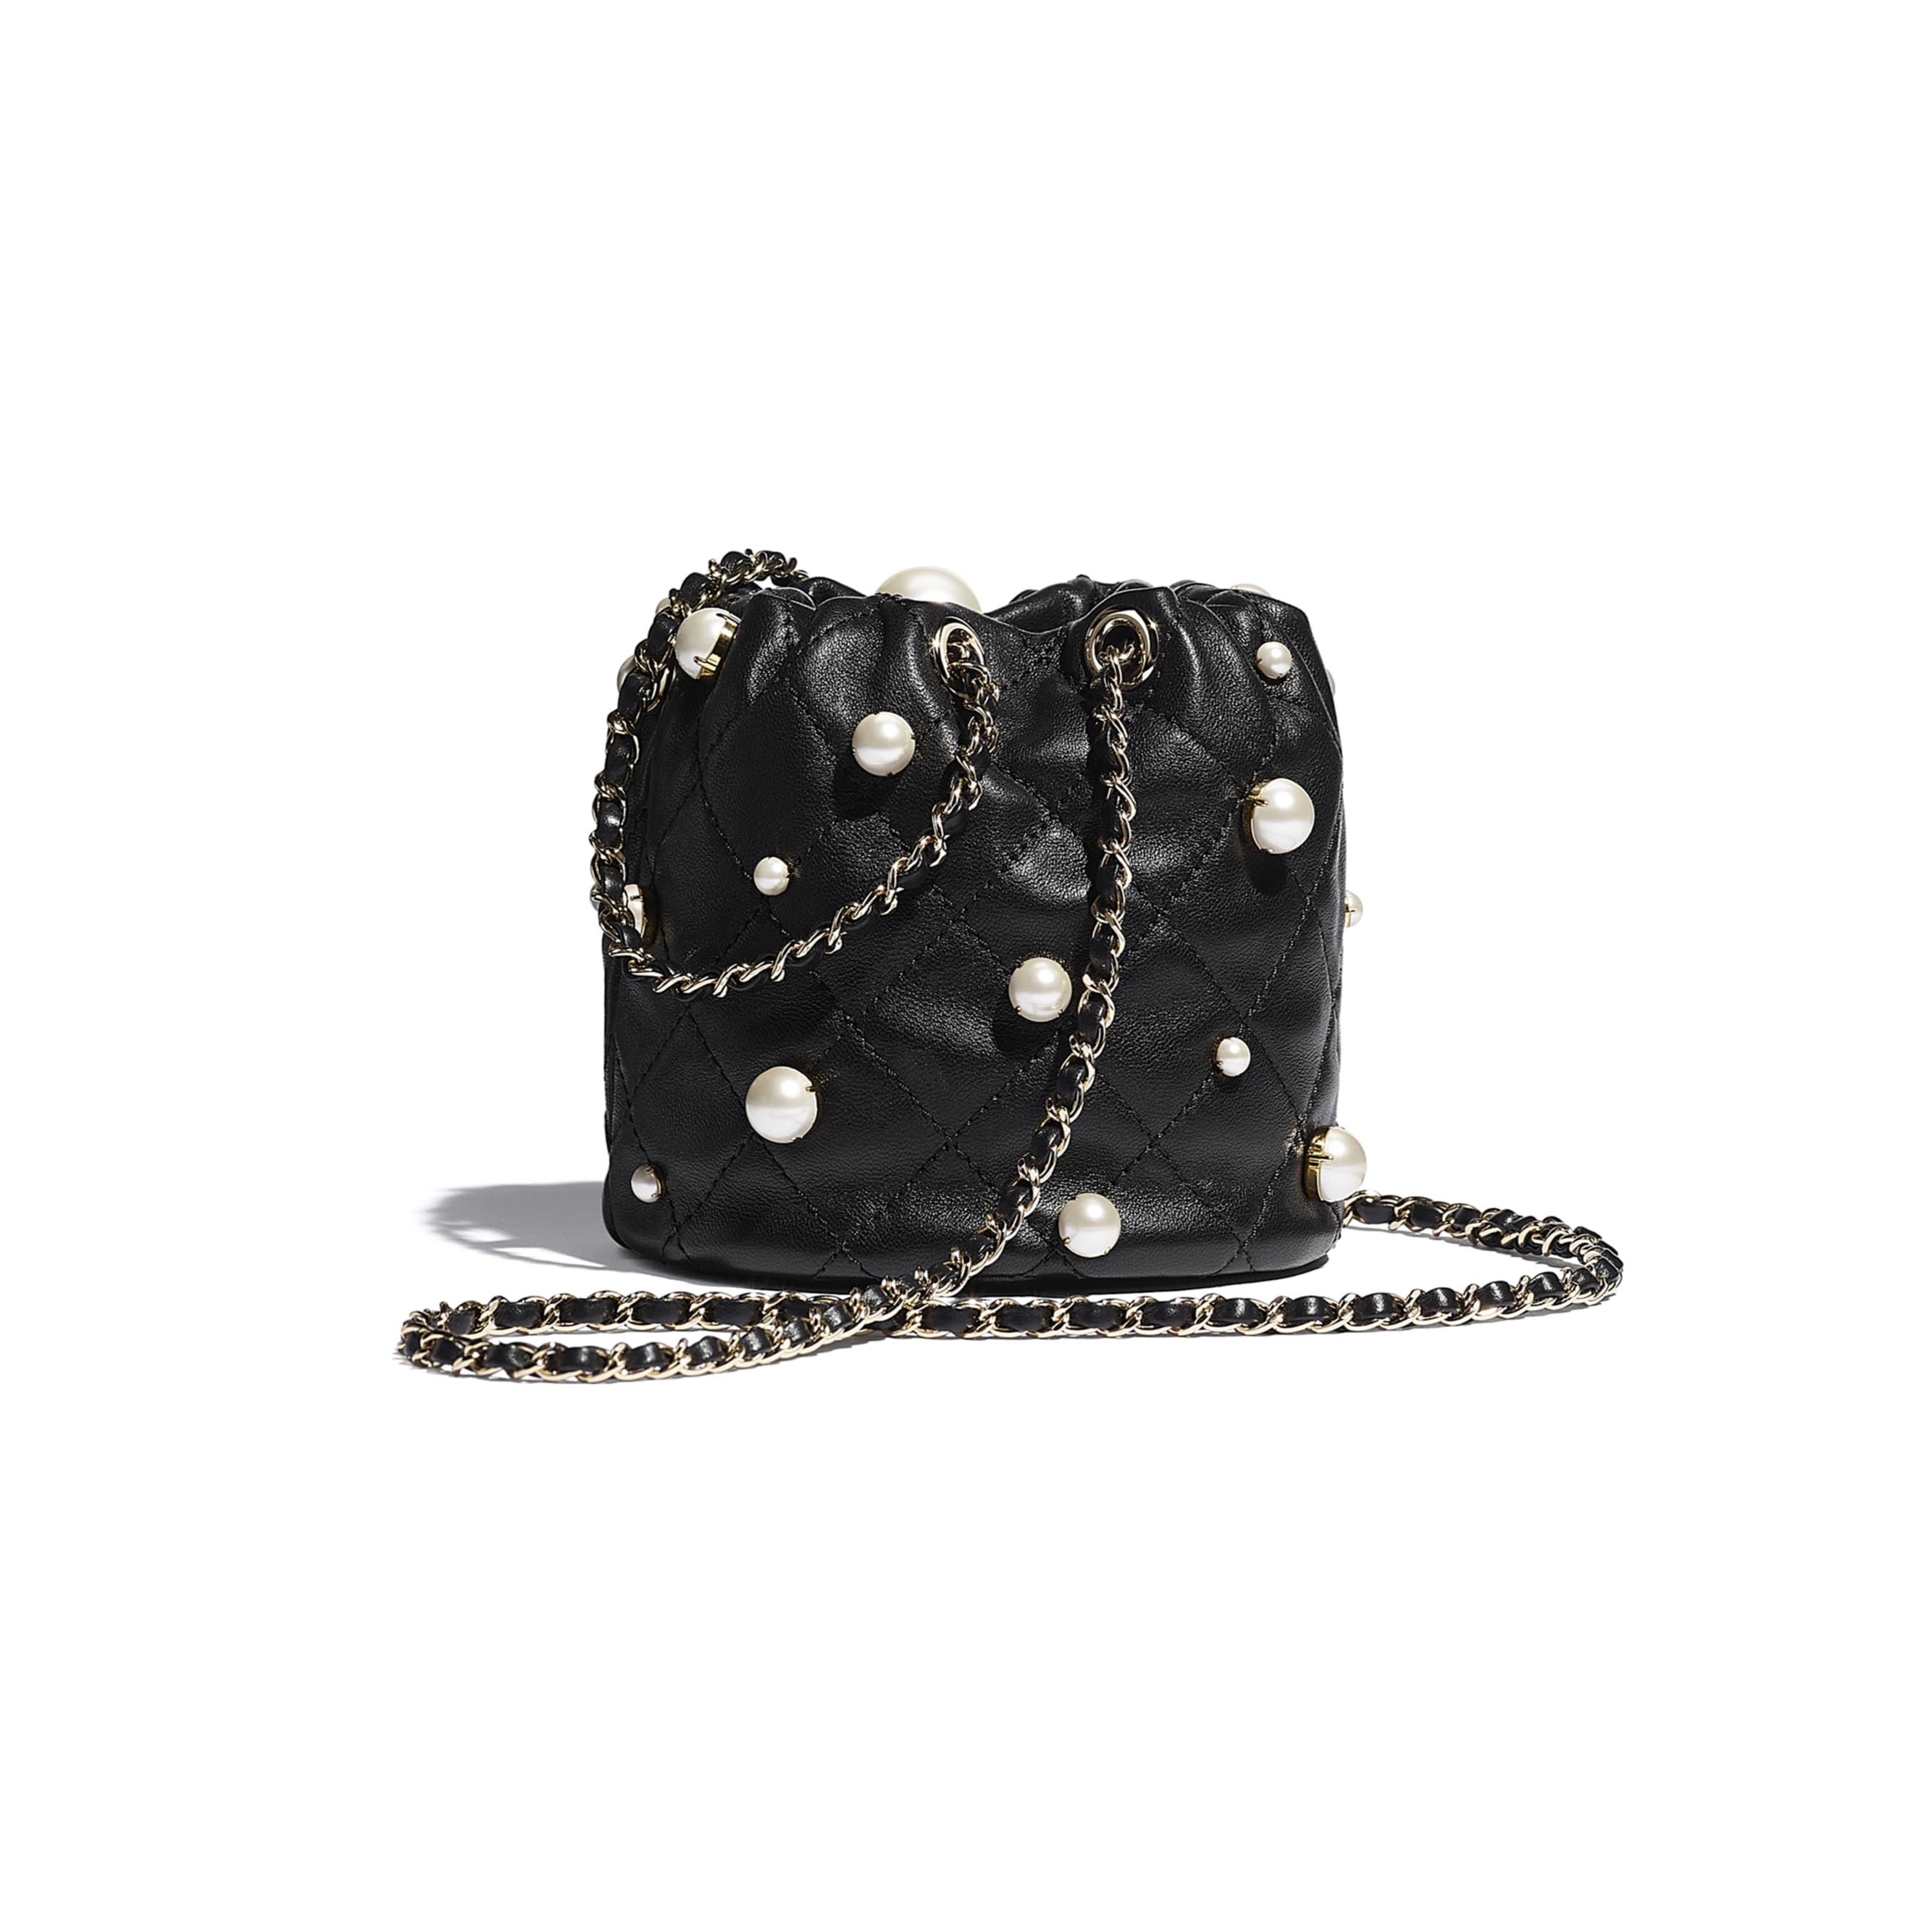 Mini Drawstring Bag - Black - Lambskin, Imitation Pearls & Gold Metal - CHANEL - Alternative view - see standard sized version